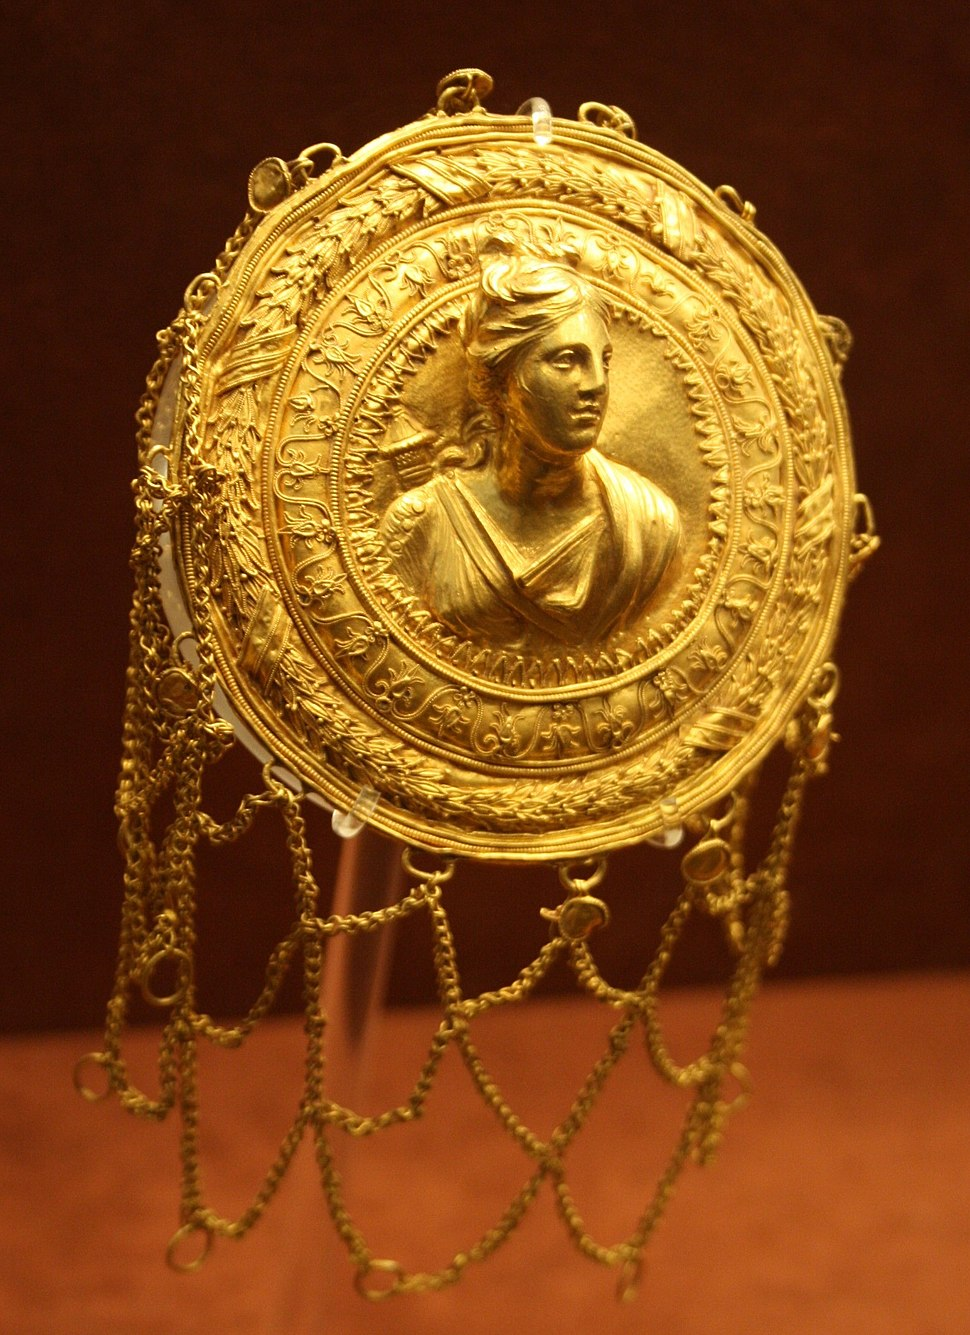 0320 - Archaeological Museum, Athens - Gold hairnet - Photo by Giovanni Dall'Orto, Nov 11 2009